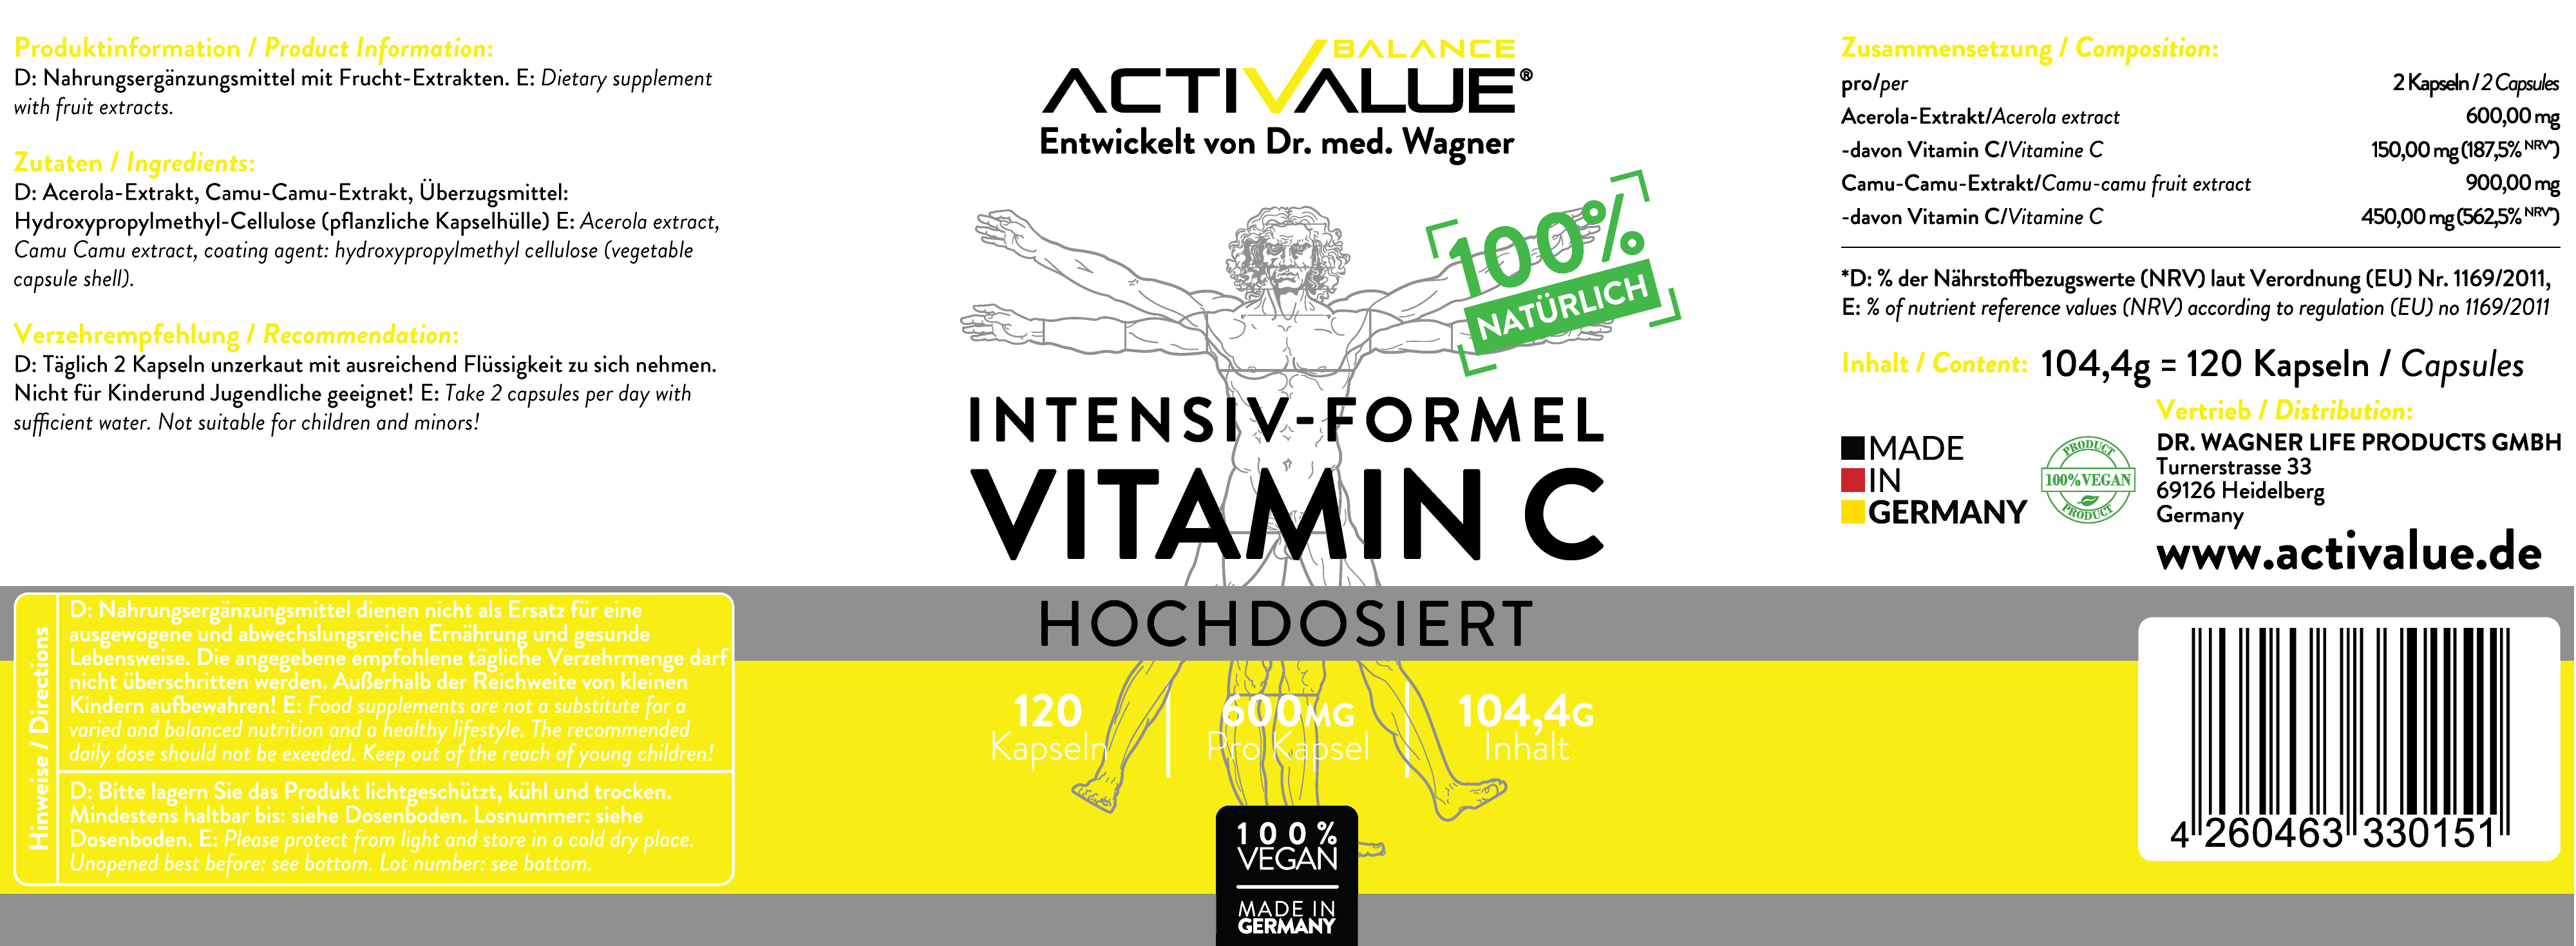 ACTIVALUE_VITAMINC_Label